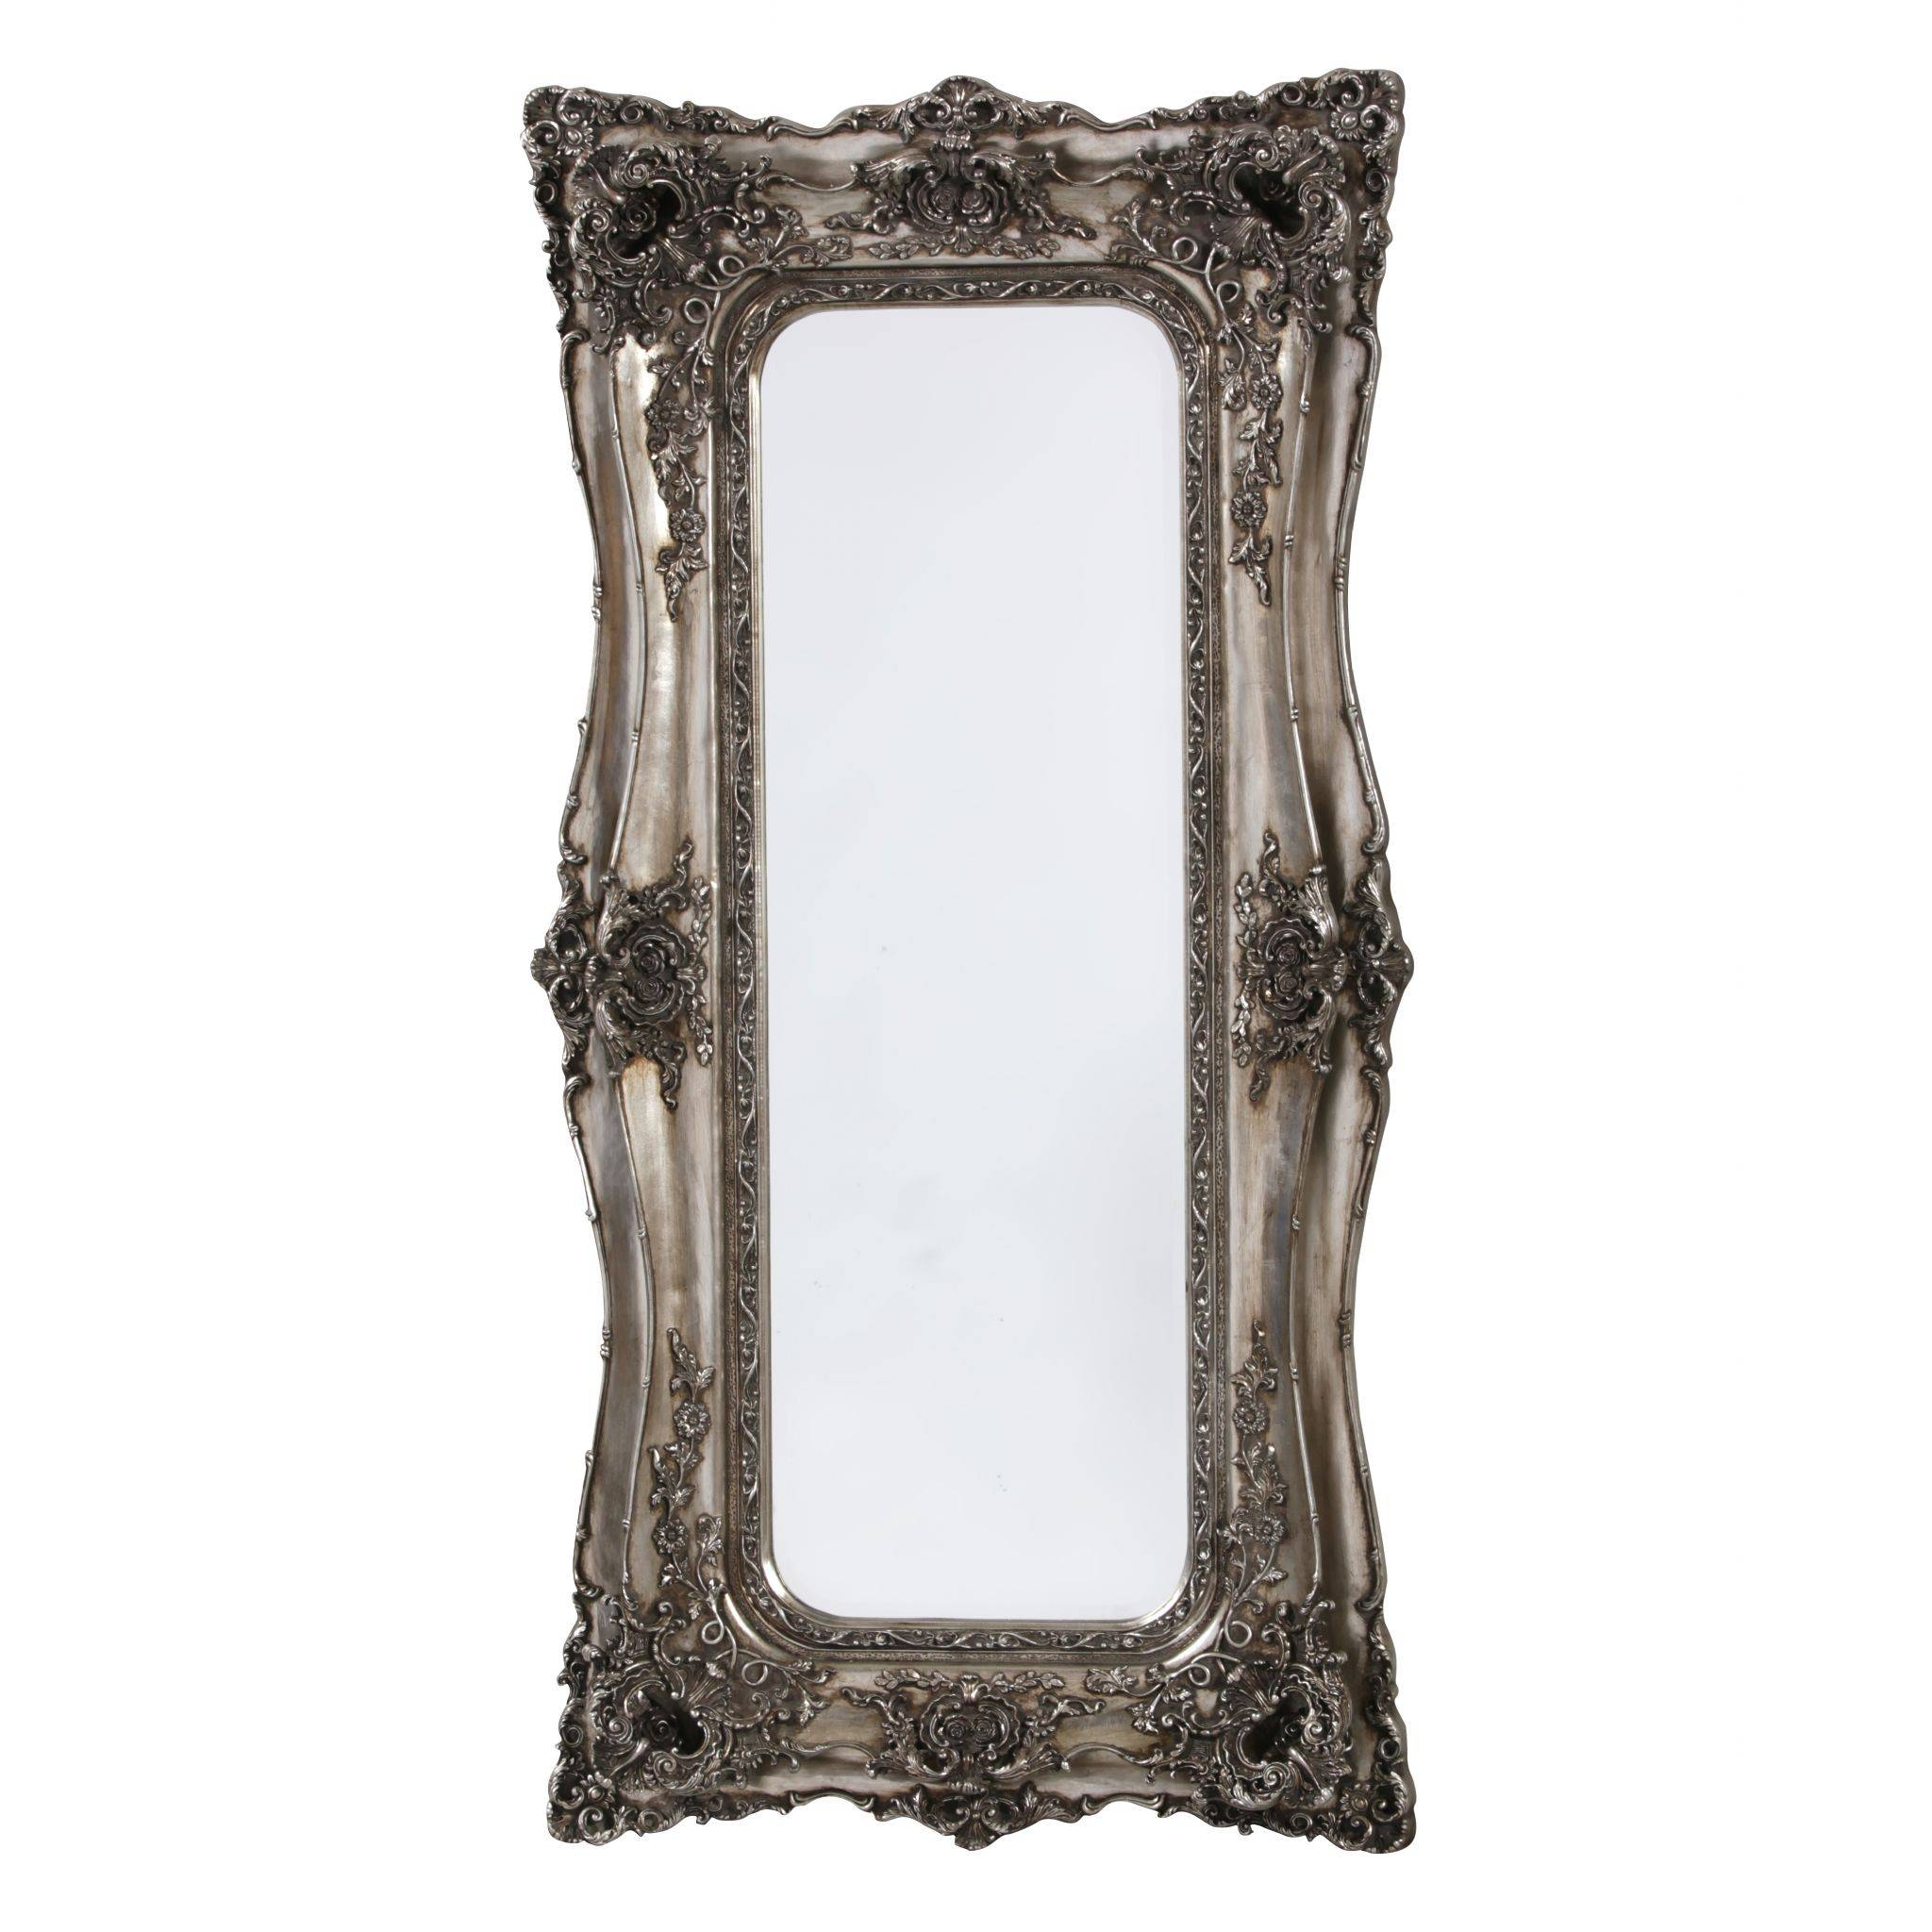 French Mirrors | Fancy Mirrors | Large Mirrors | Decorative Intended For Fancy Mirrors (View 15 of 15)